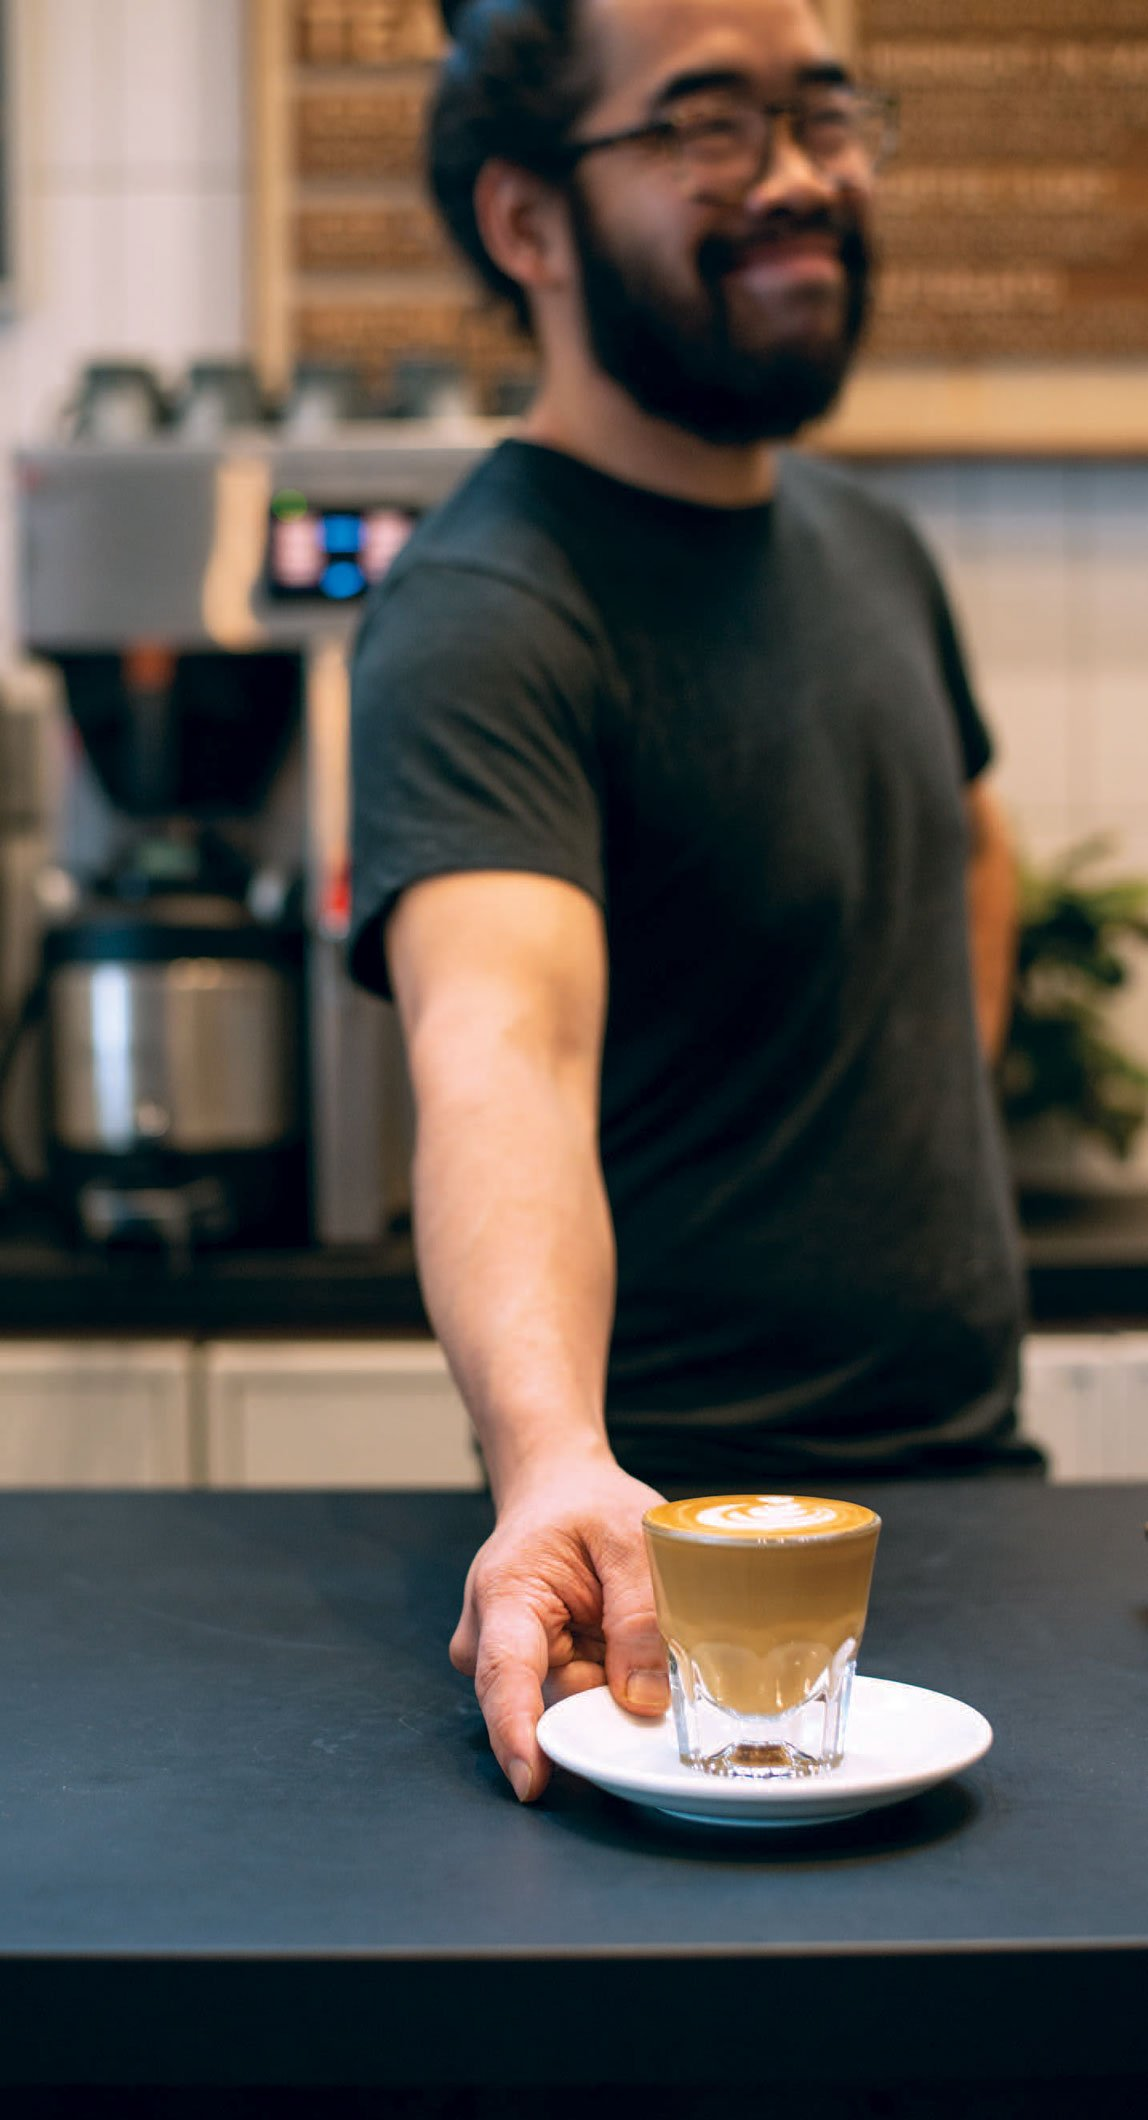 Duc Huynh serves up his famous craft coffee.